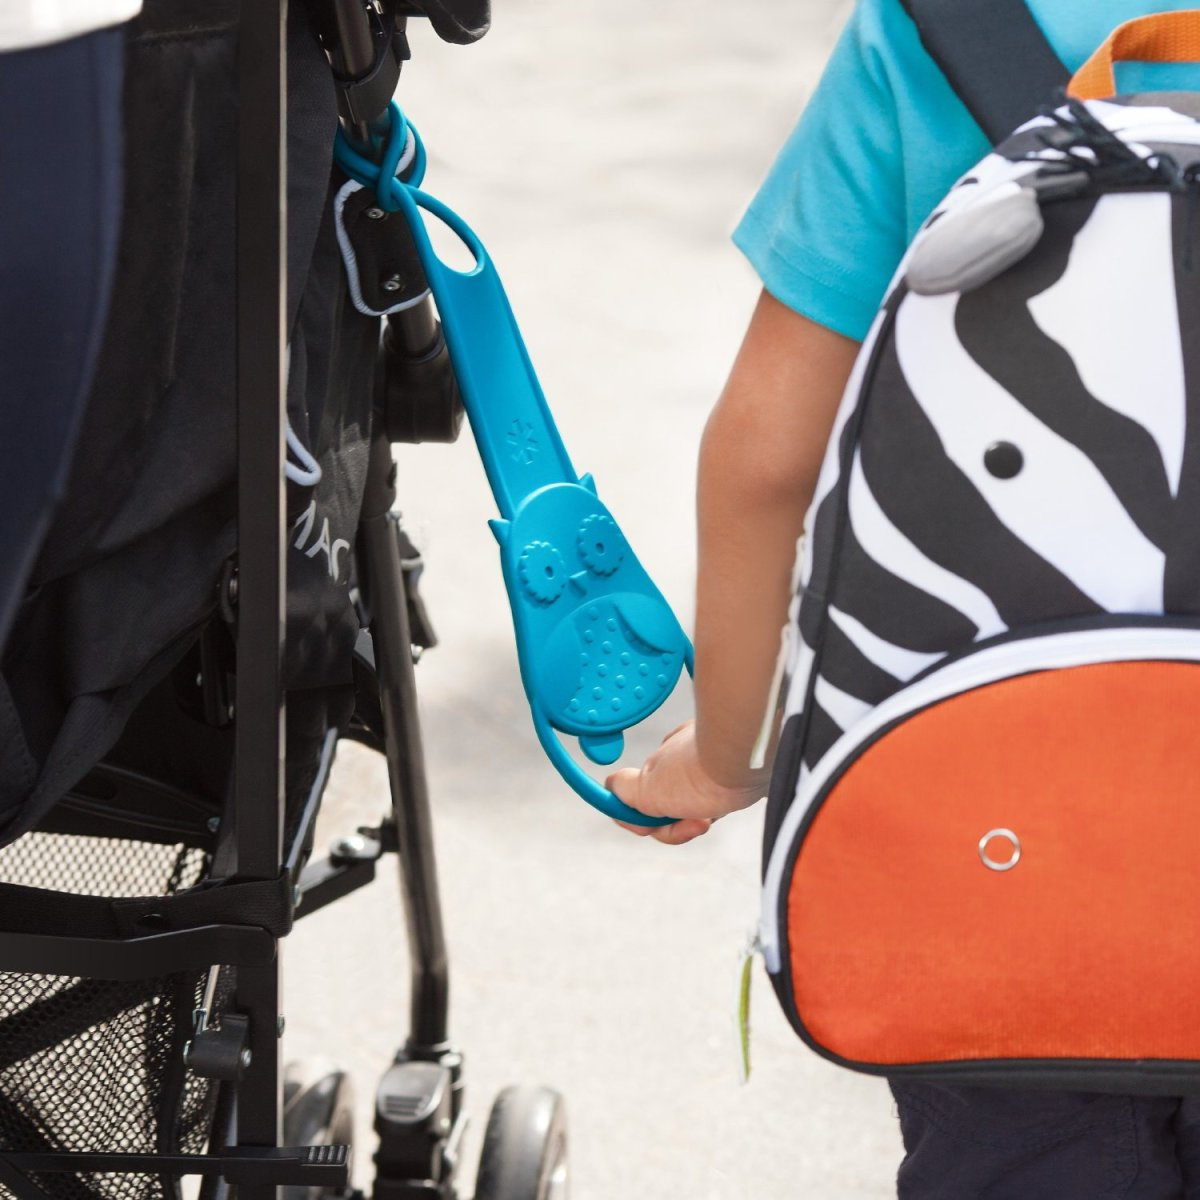 the-skip-hop-walk-along-stroller-handle-teaches-older-children-to-stay-close-to-mom